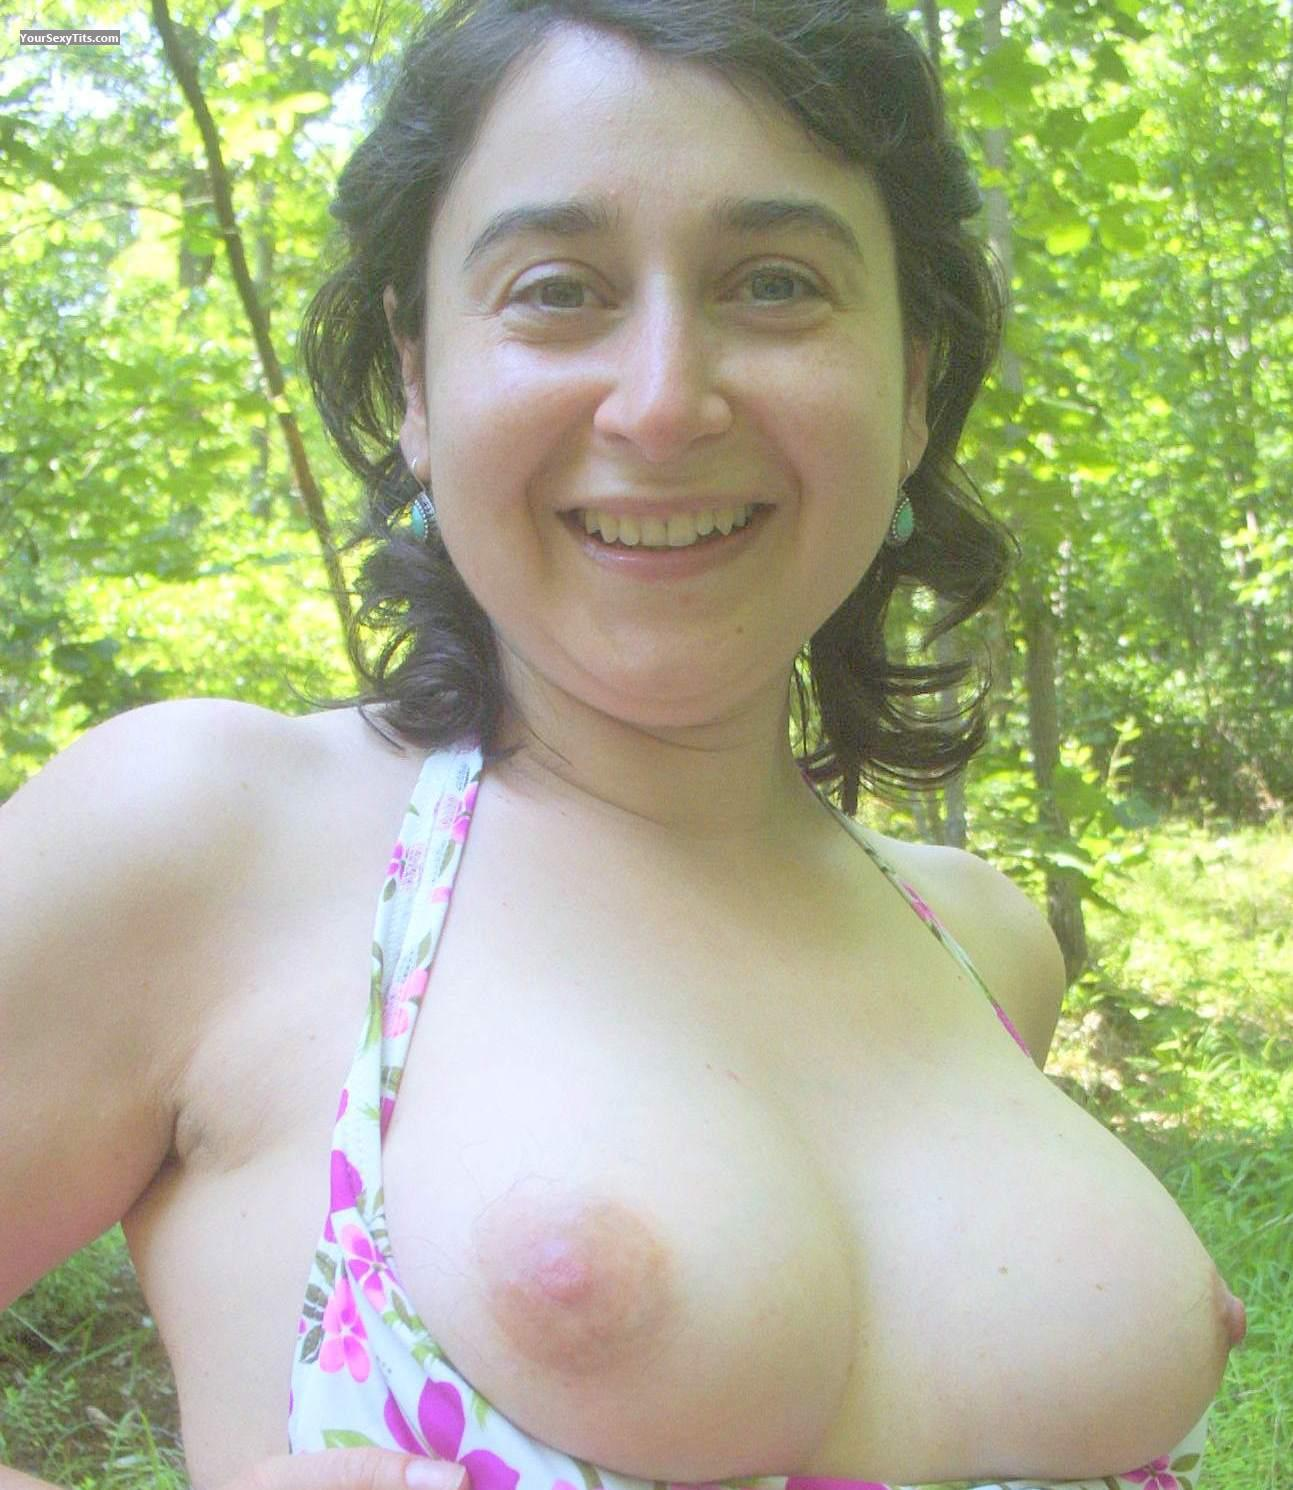 Tit Flash: Medium Tits - Topless Alina from Romania